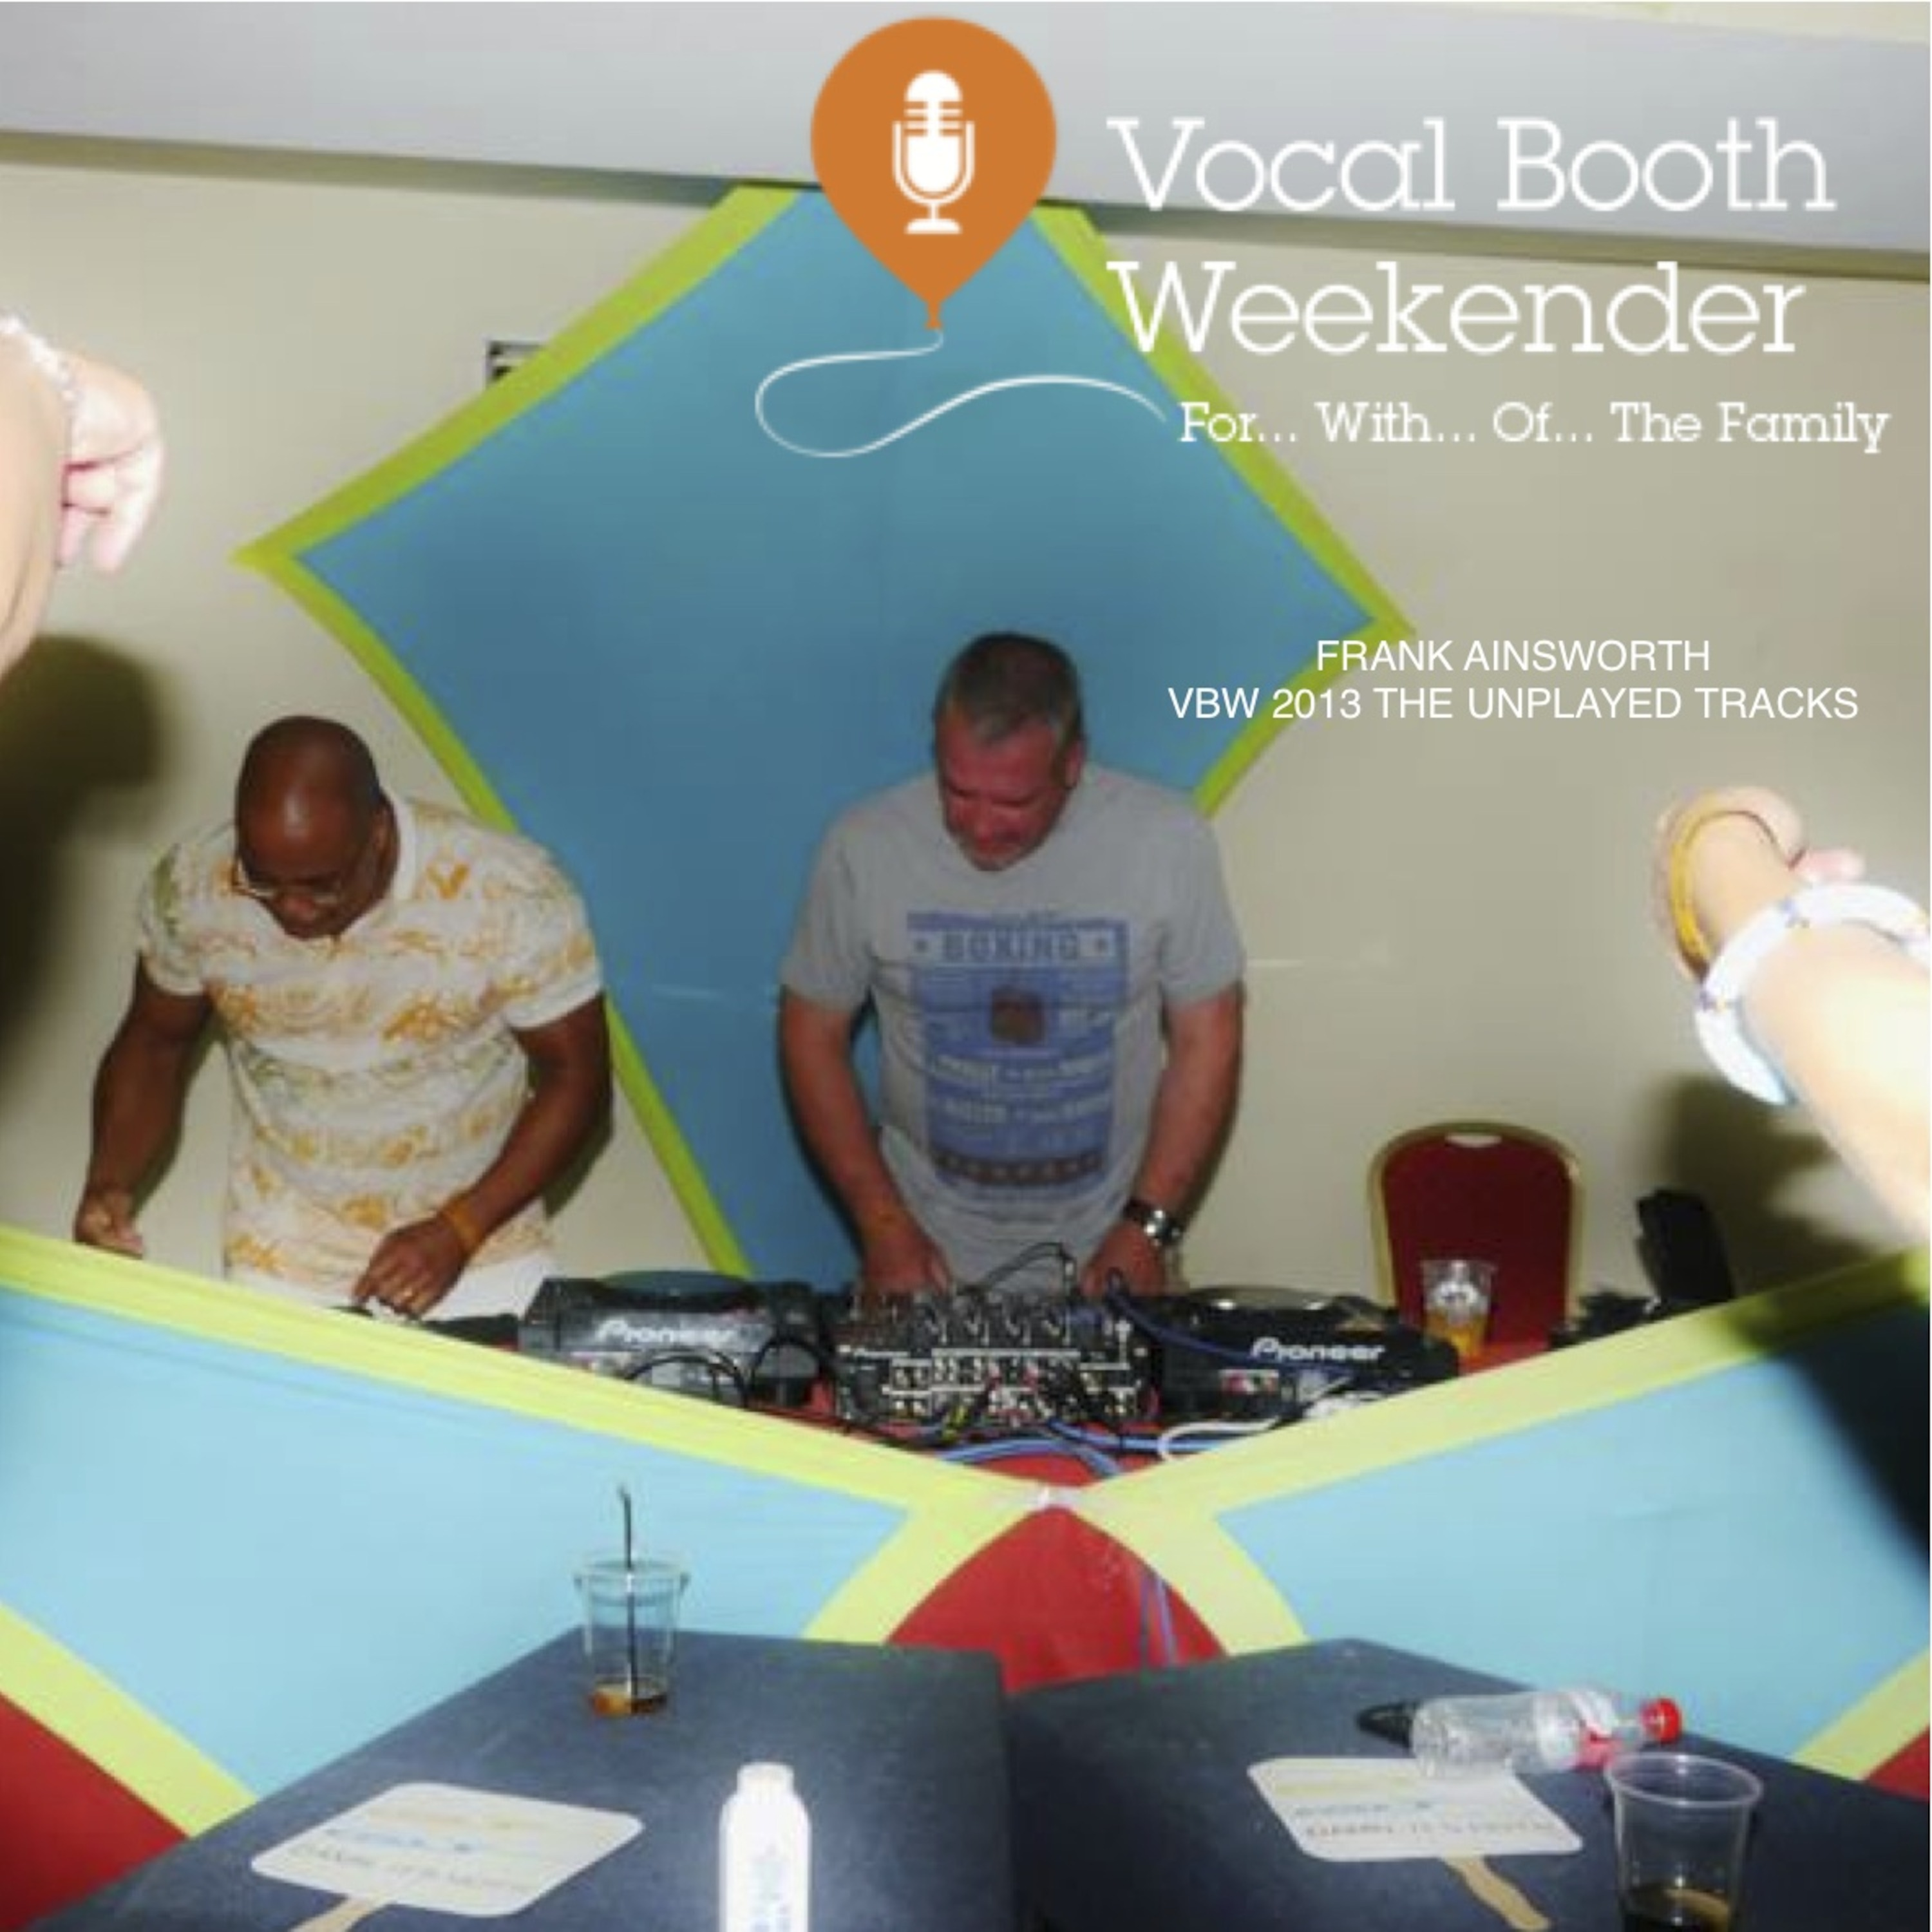 Vocal Booth 2013 - Frank Ainsworth Unplayed Tracks